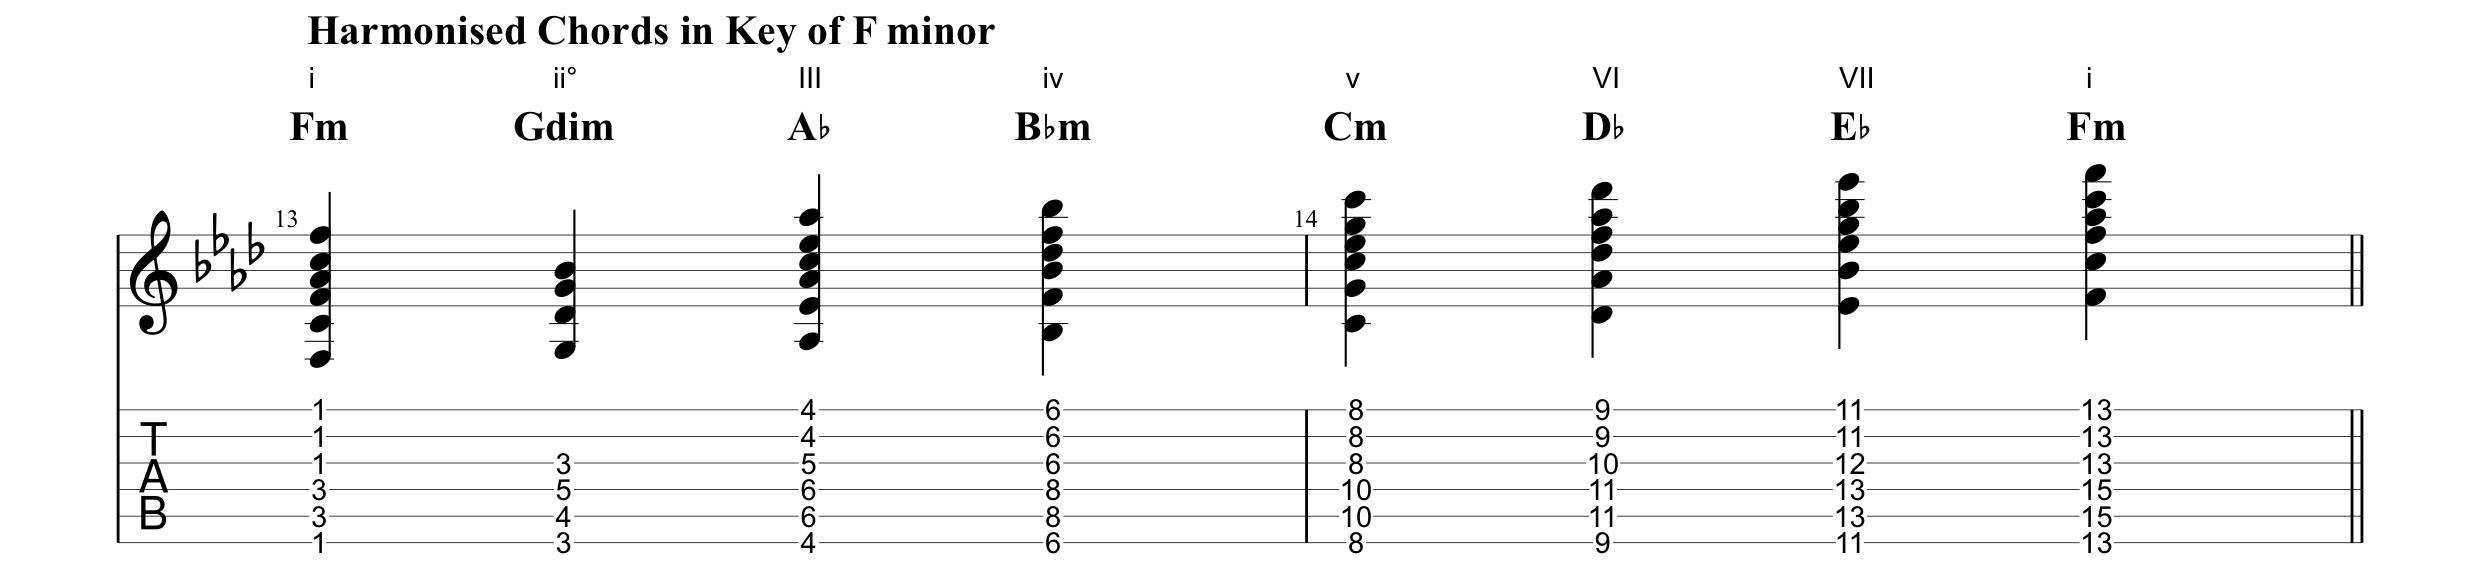 Harmonised Chords in the Key of F minor (Lost on You).png